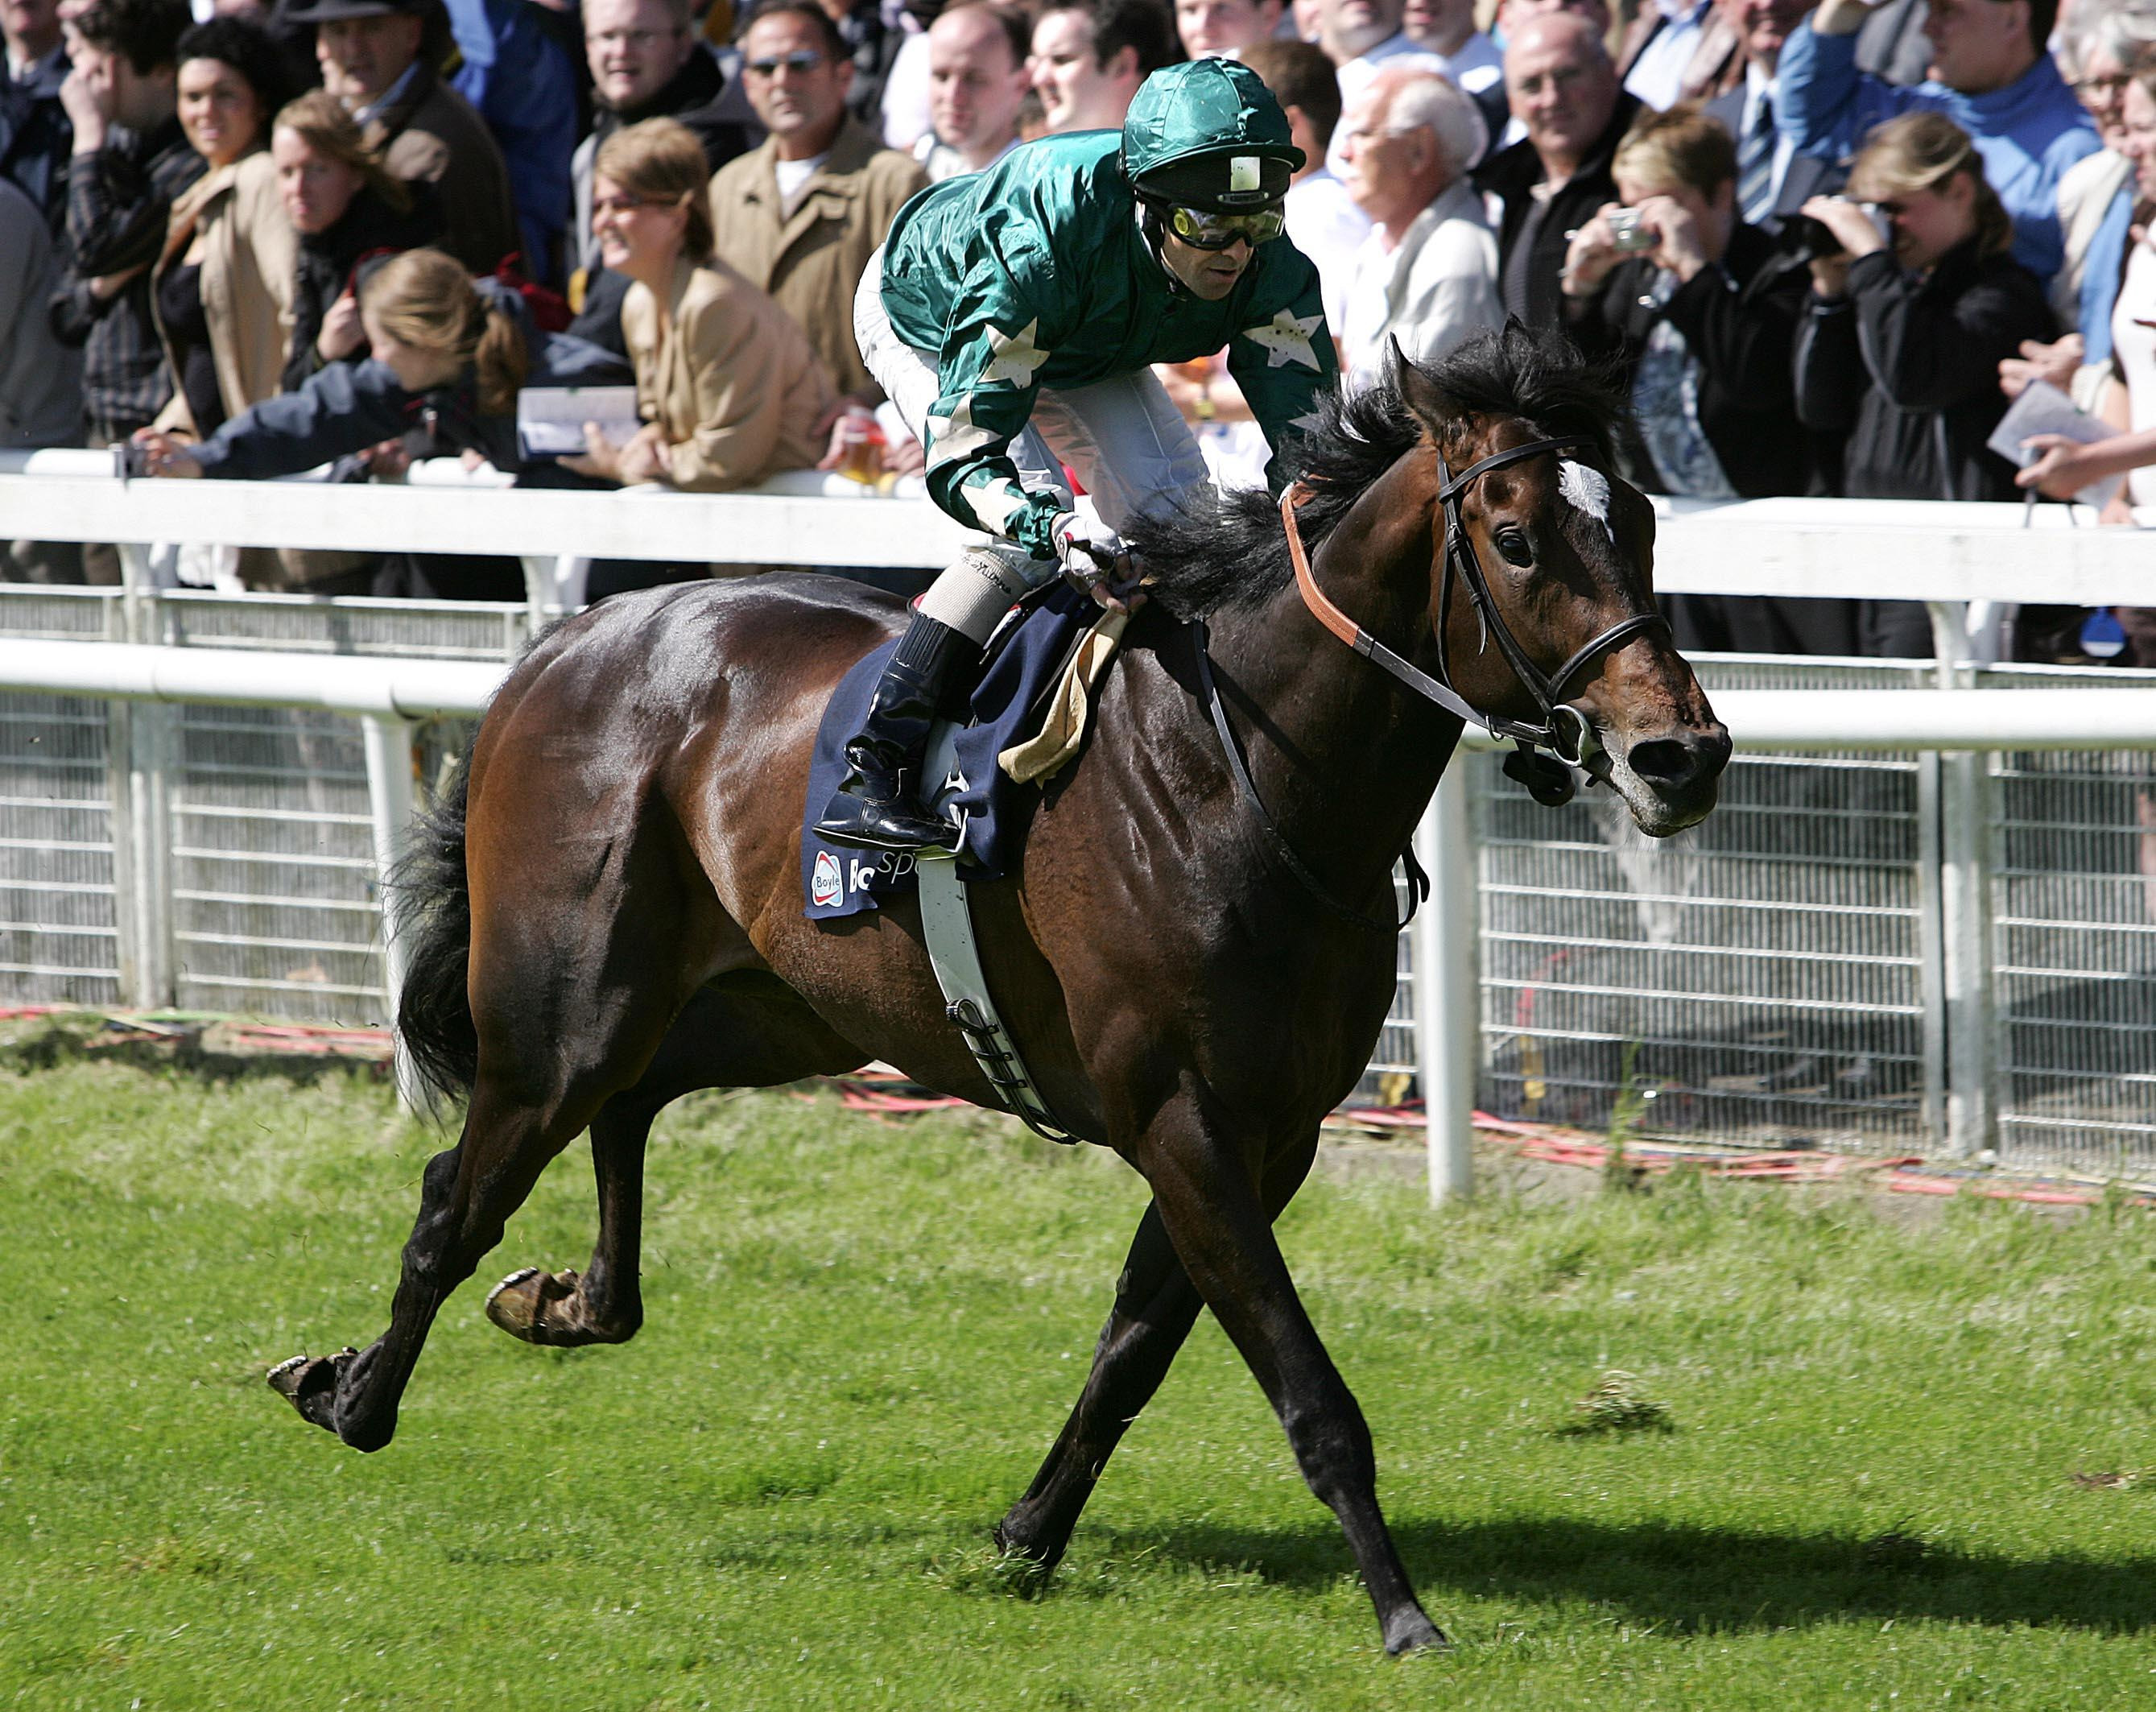 Araafa was a very impressive winner of the Irish 2,000 Guineas